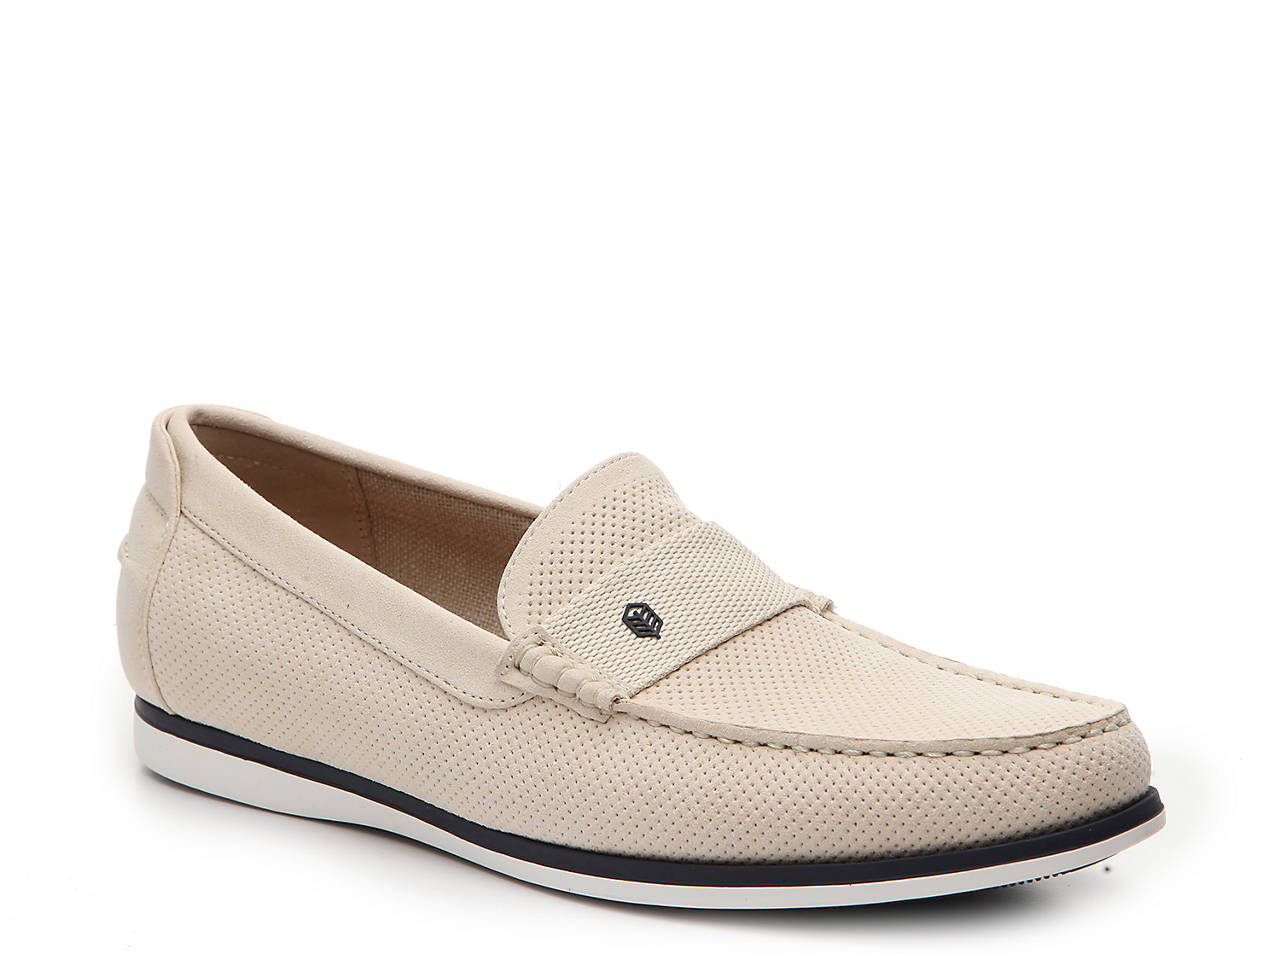 Call It Spring Zeddiani Loafer For Sale Finishline Clearance Great Deals Extremely Sale Online 100% Original Sale Online Supply XNci0h2wj4